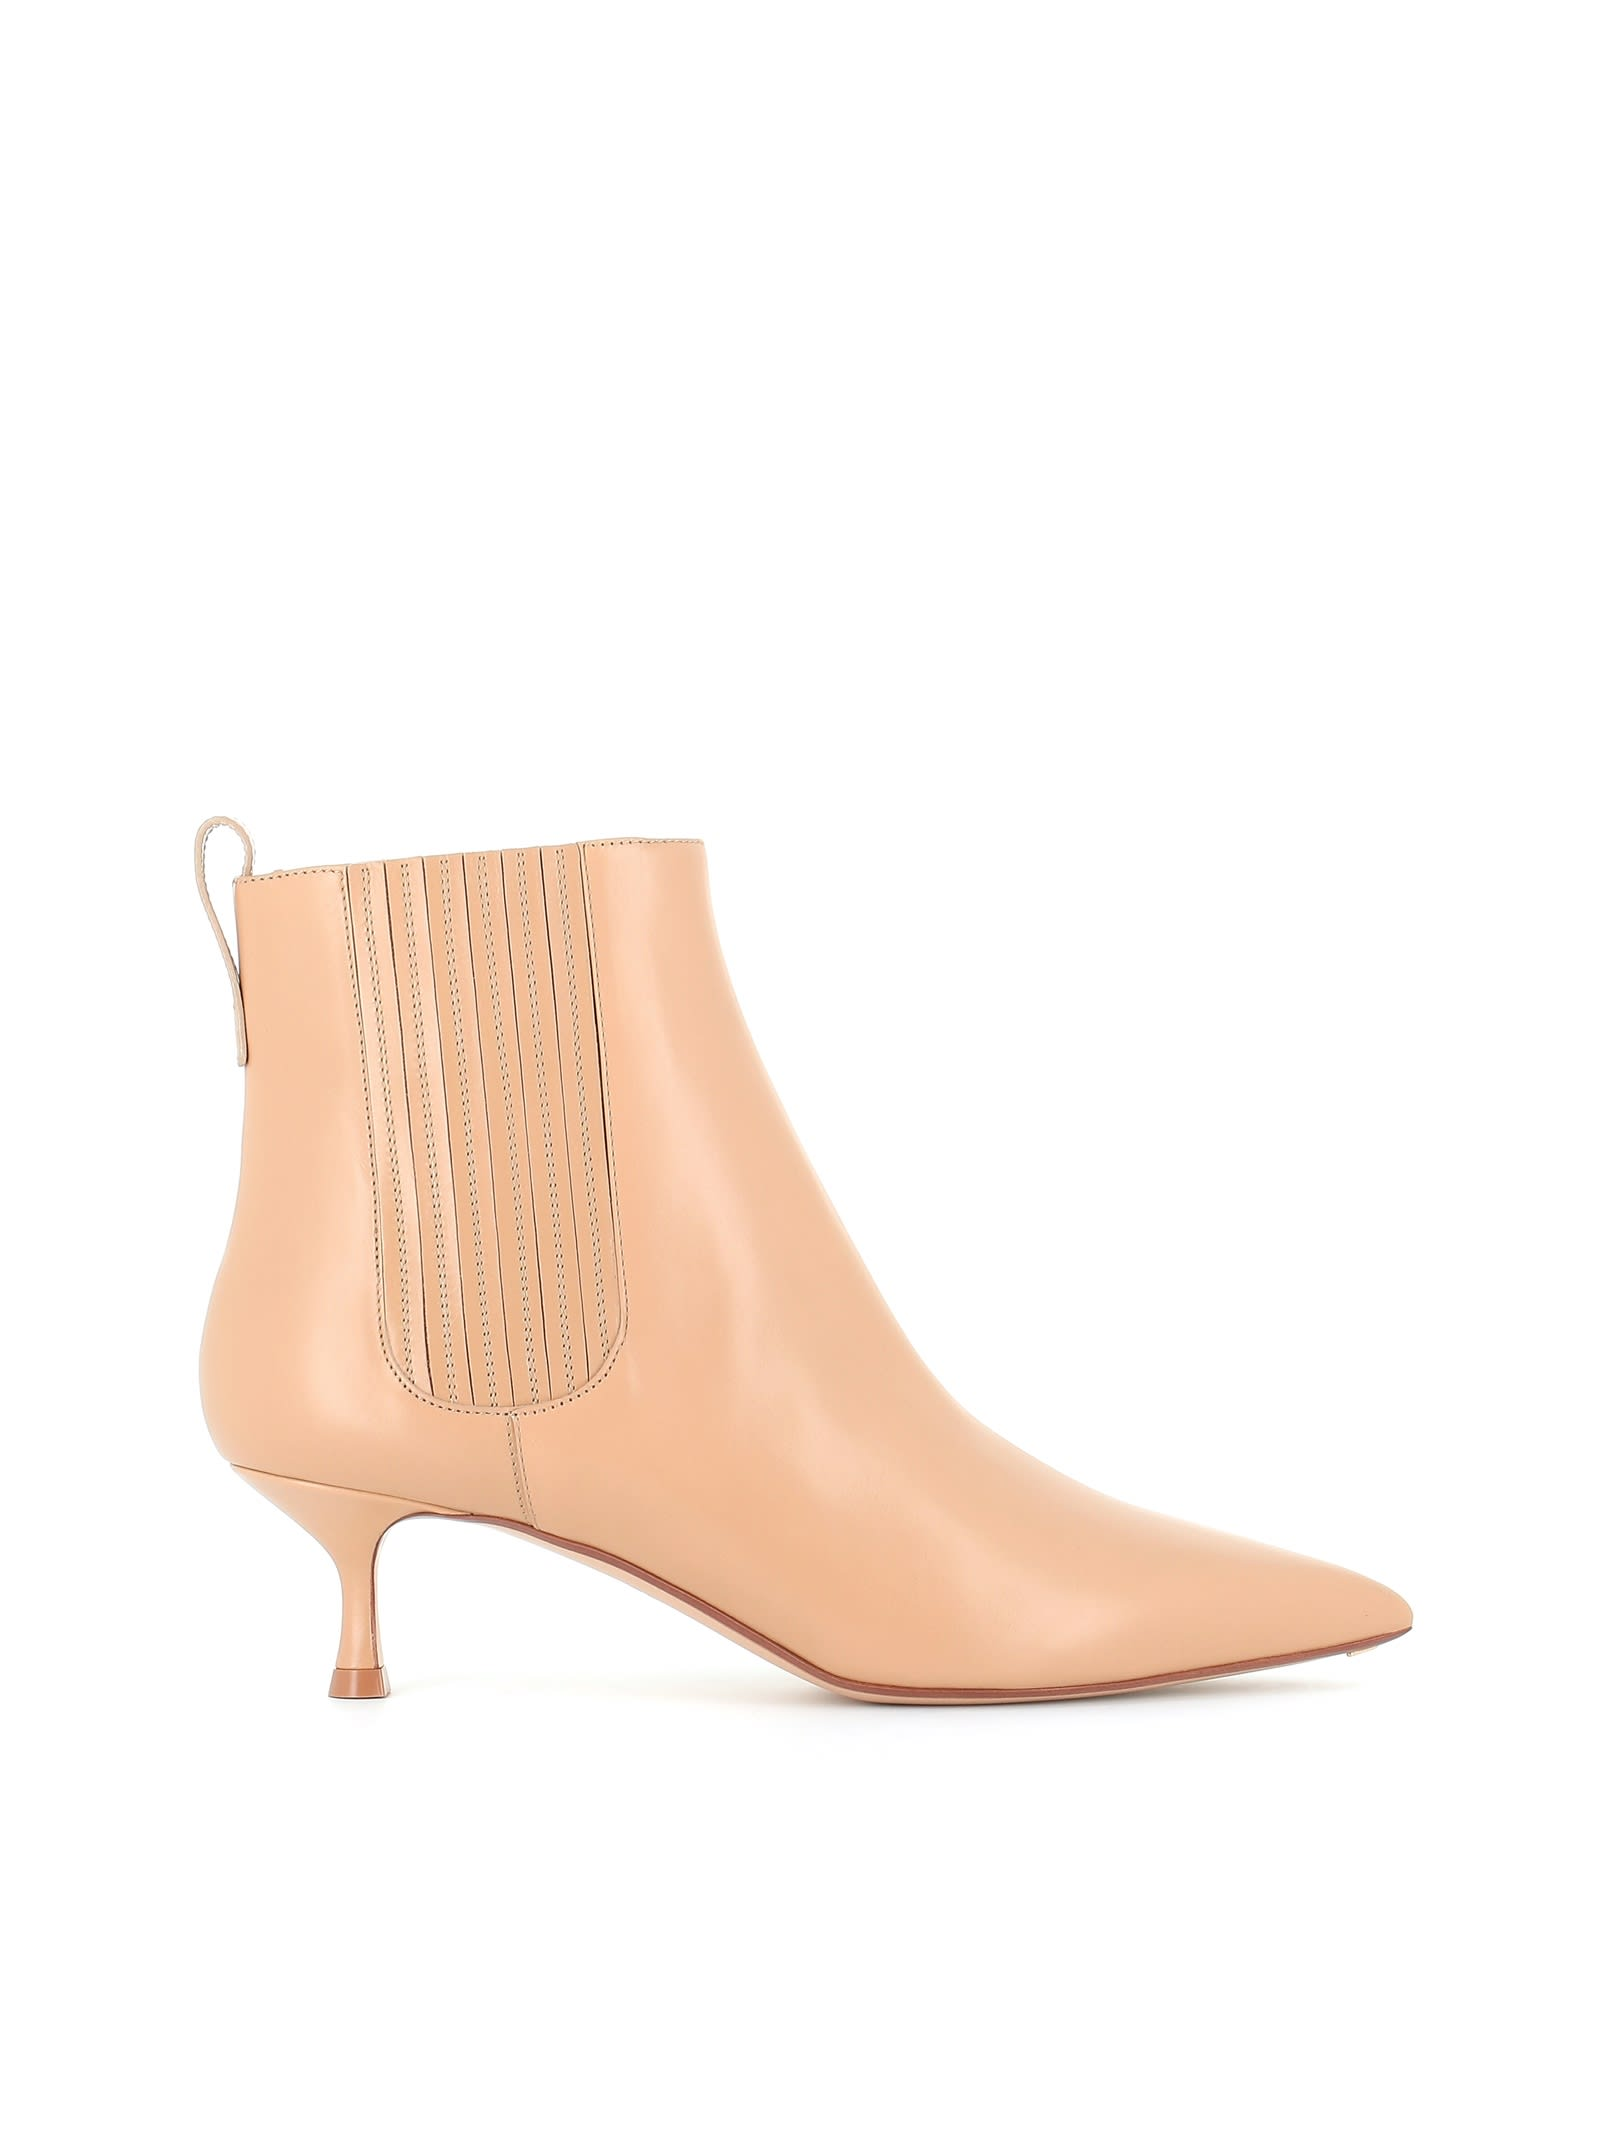 Buy Francesco Russo Ankle Boot online, shop Francesco Russo shoes with free shipping